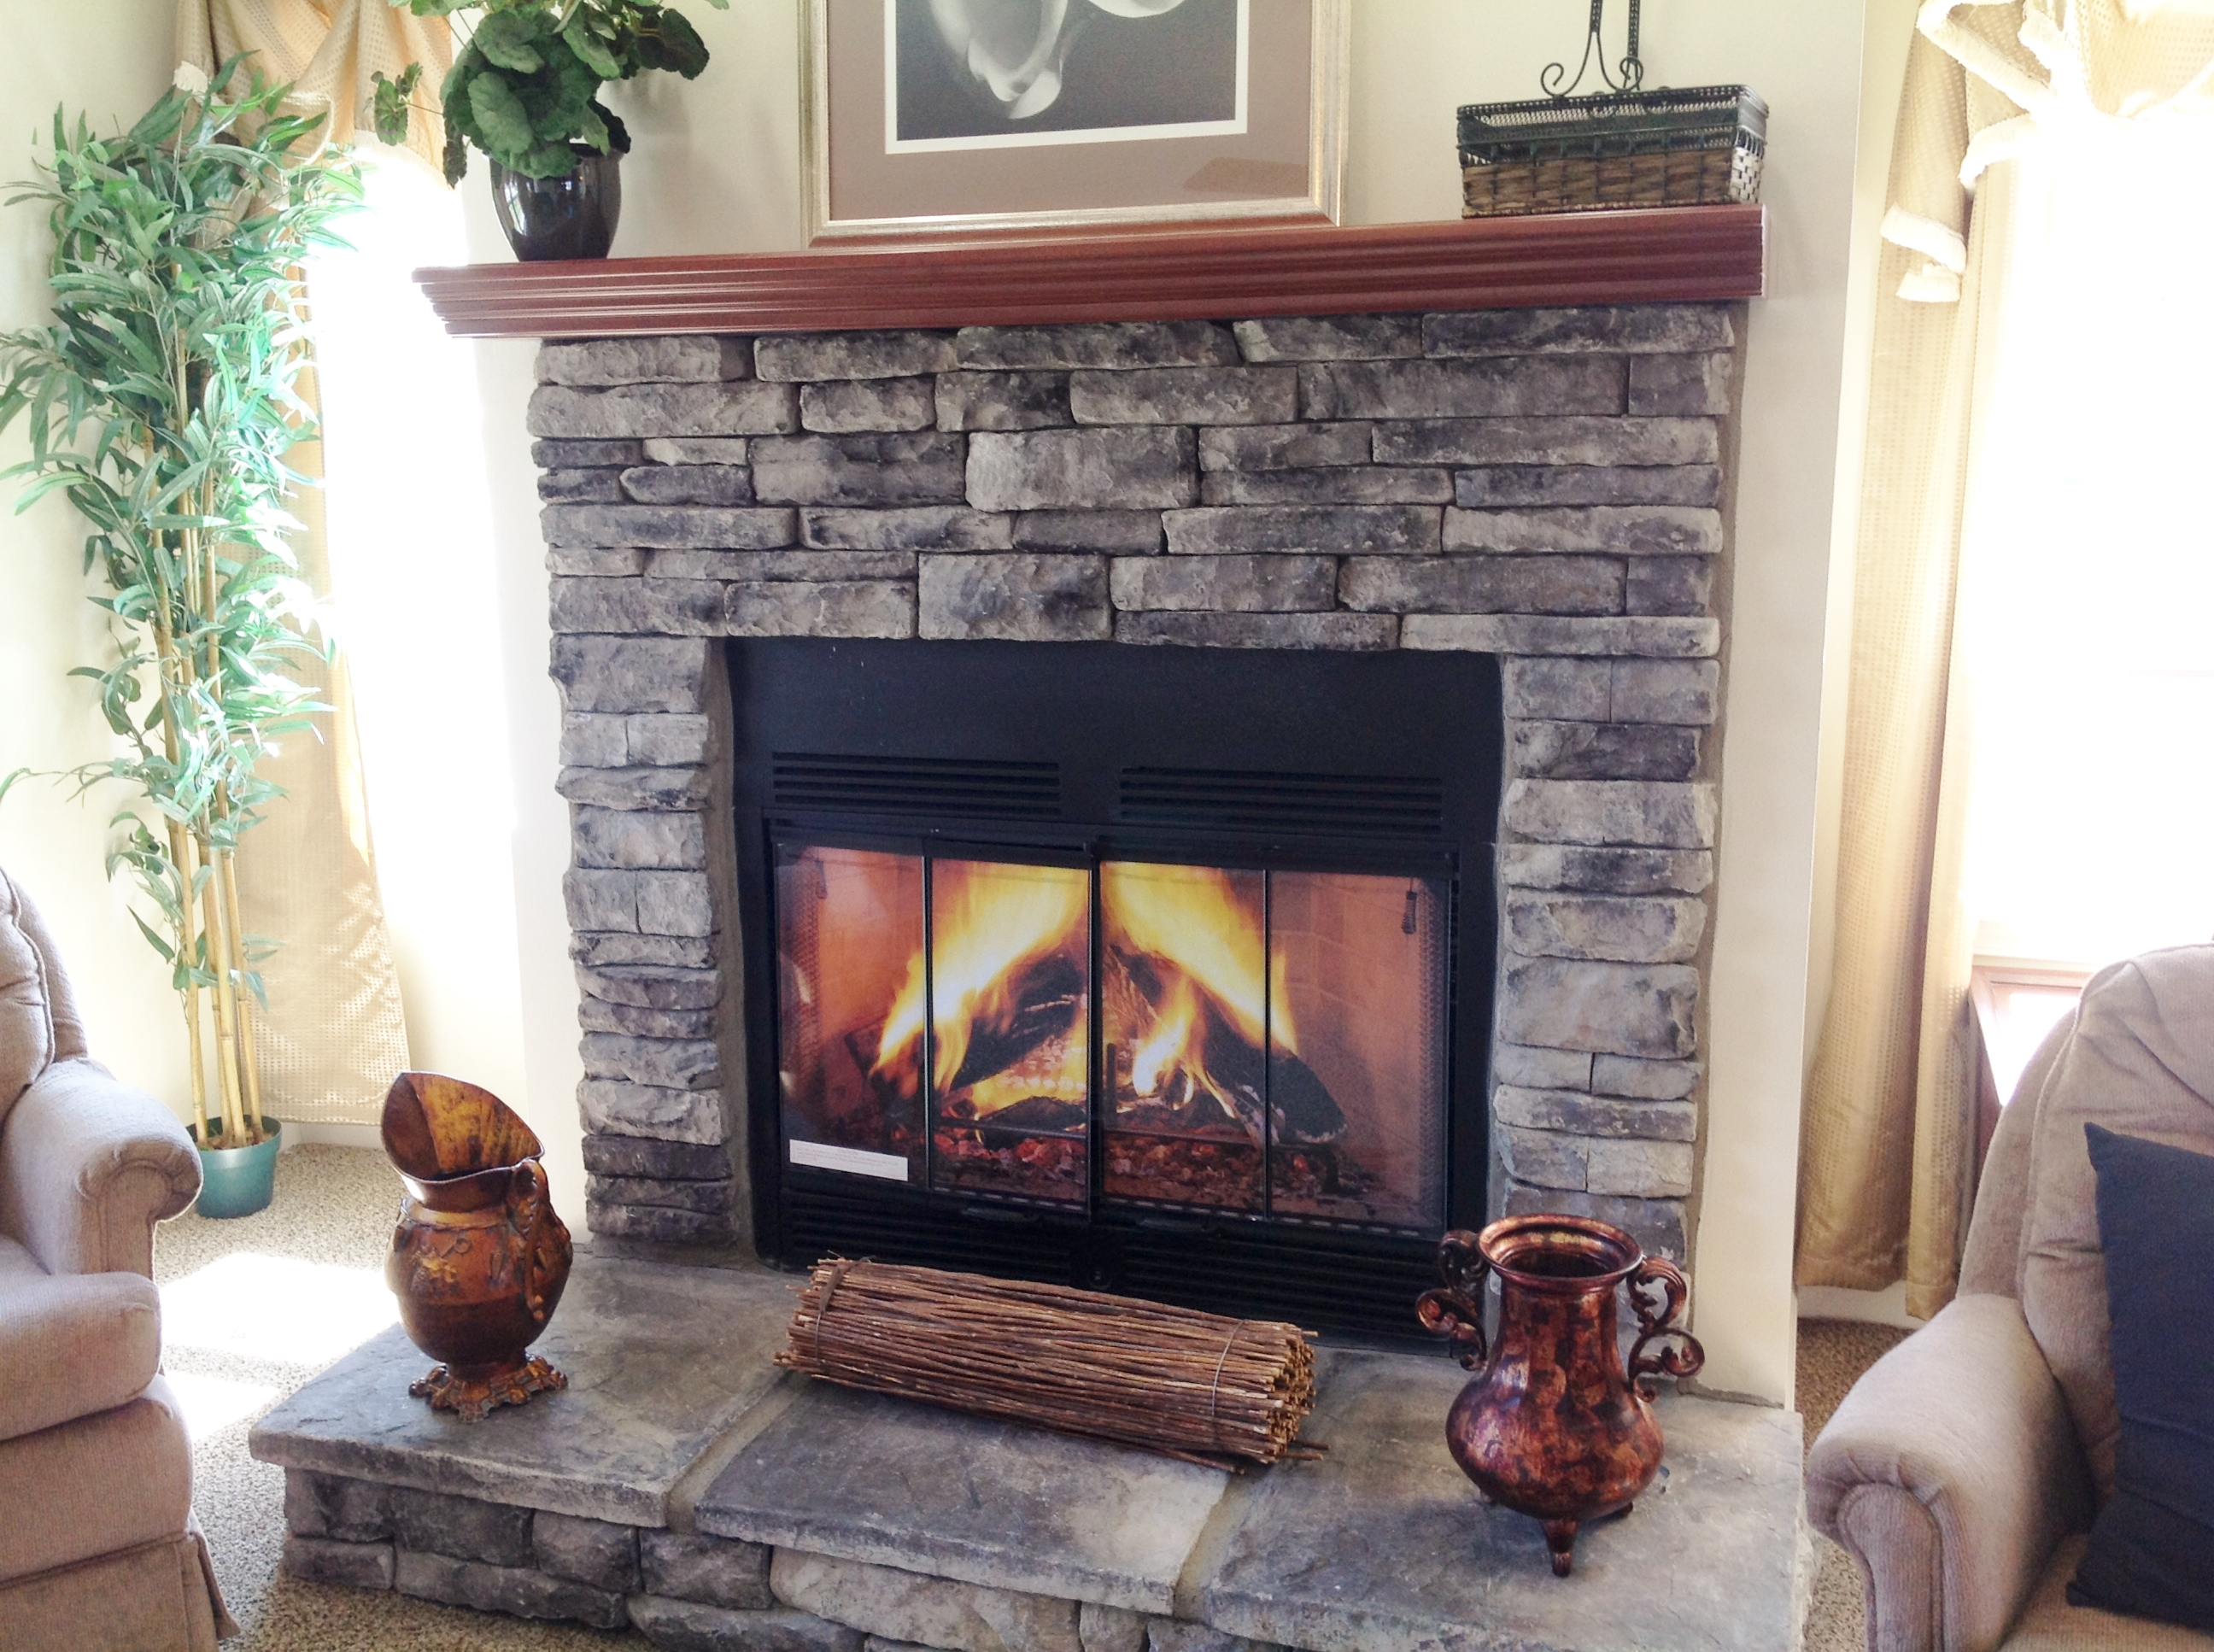 Recessed Windows at Fireplace